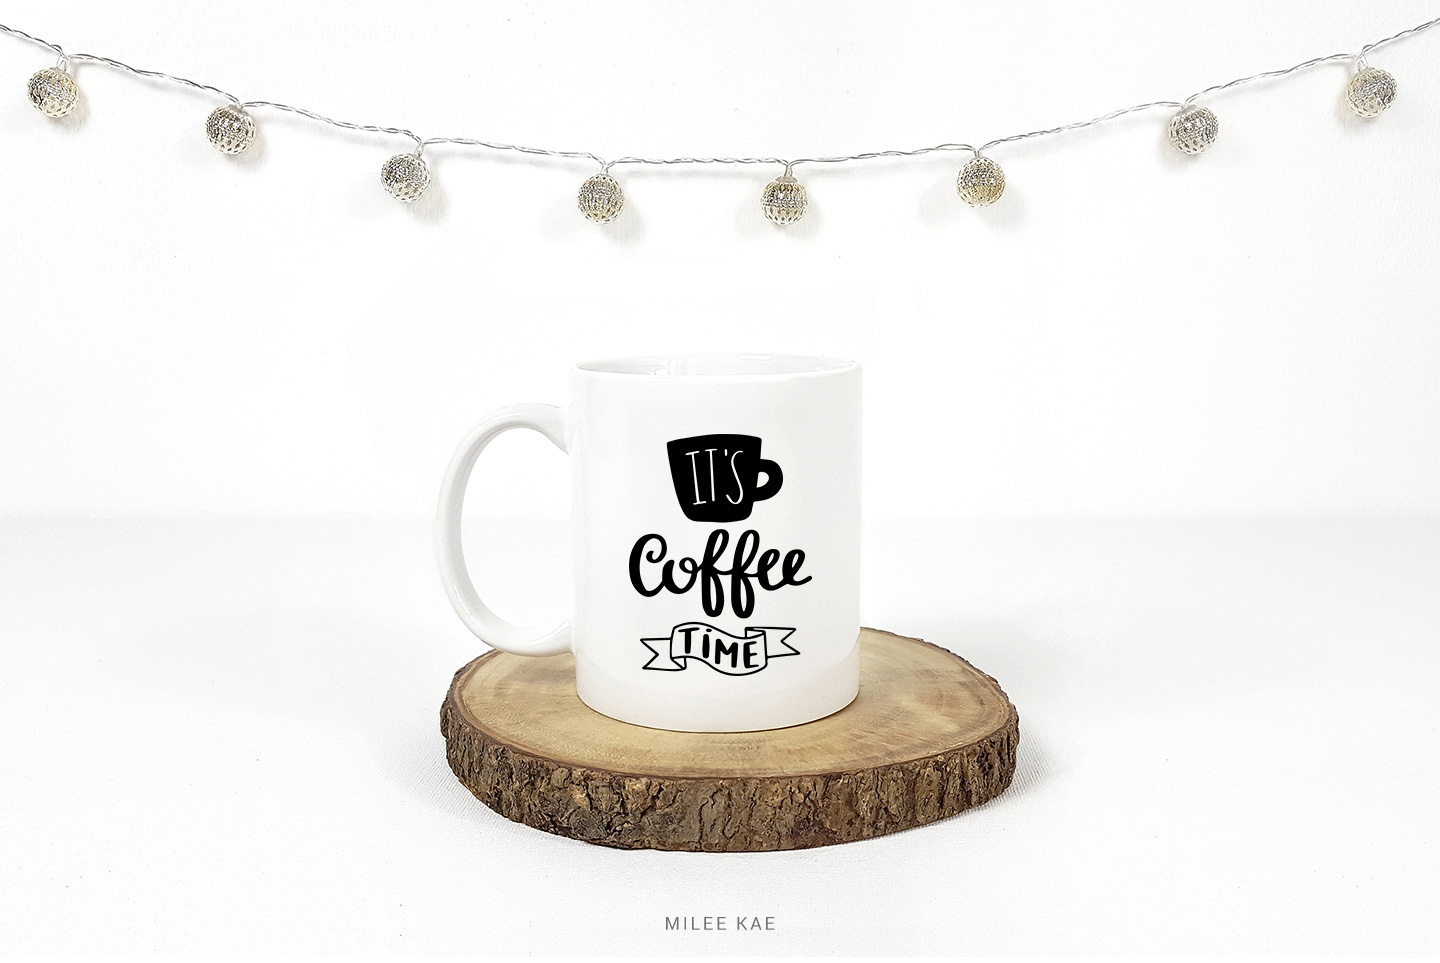 Coffee time SVG, Cutting file, Decal example image 2